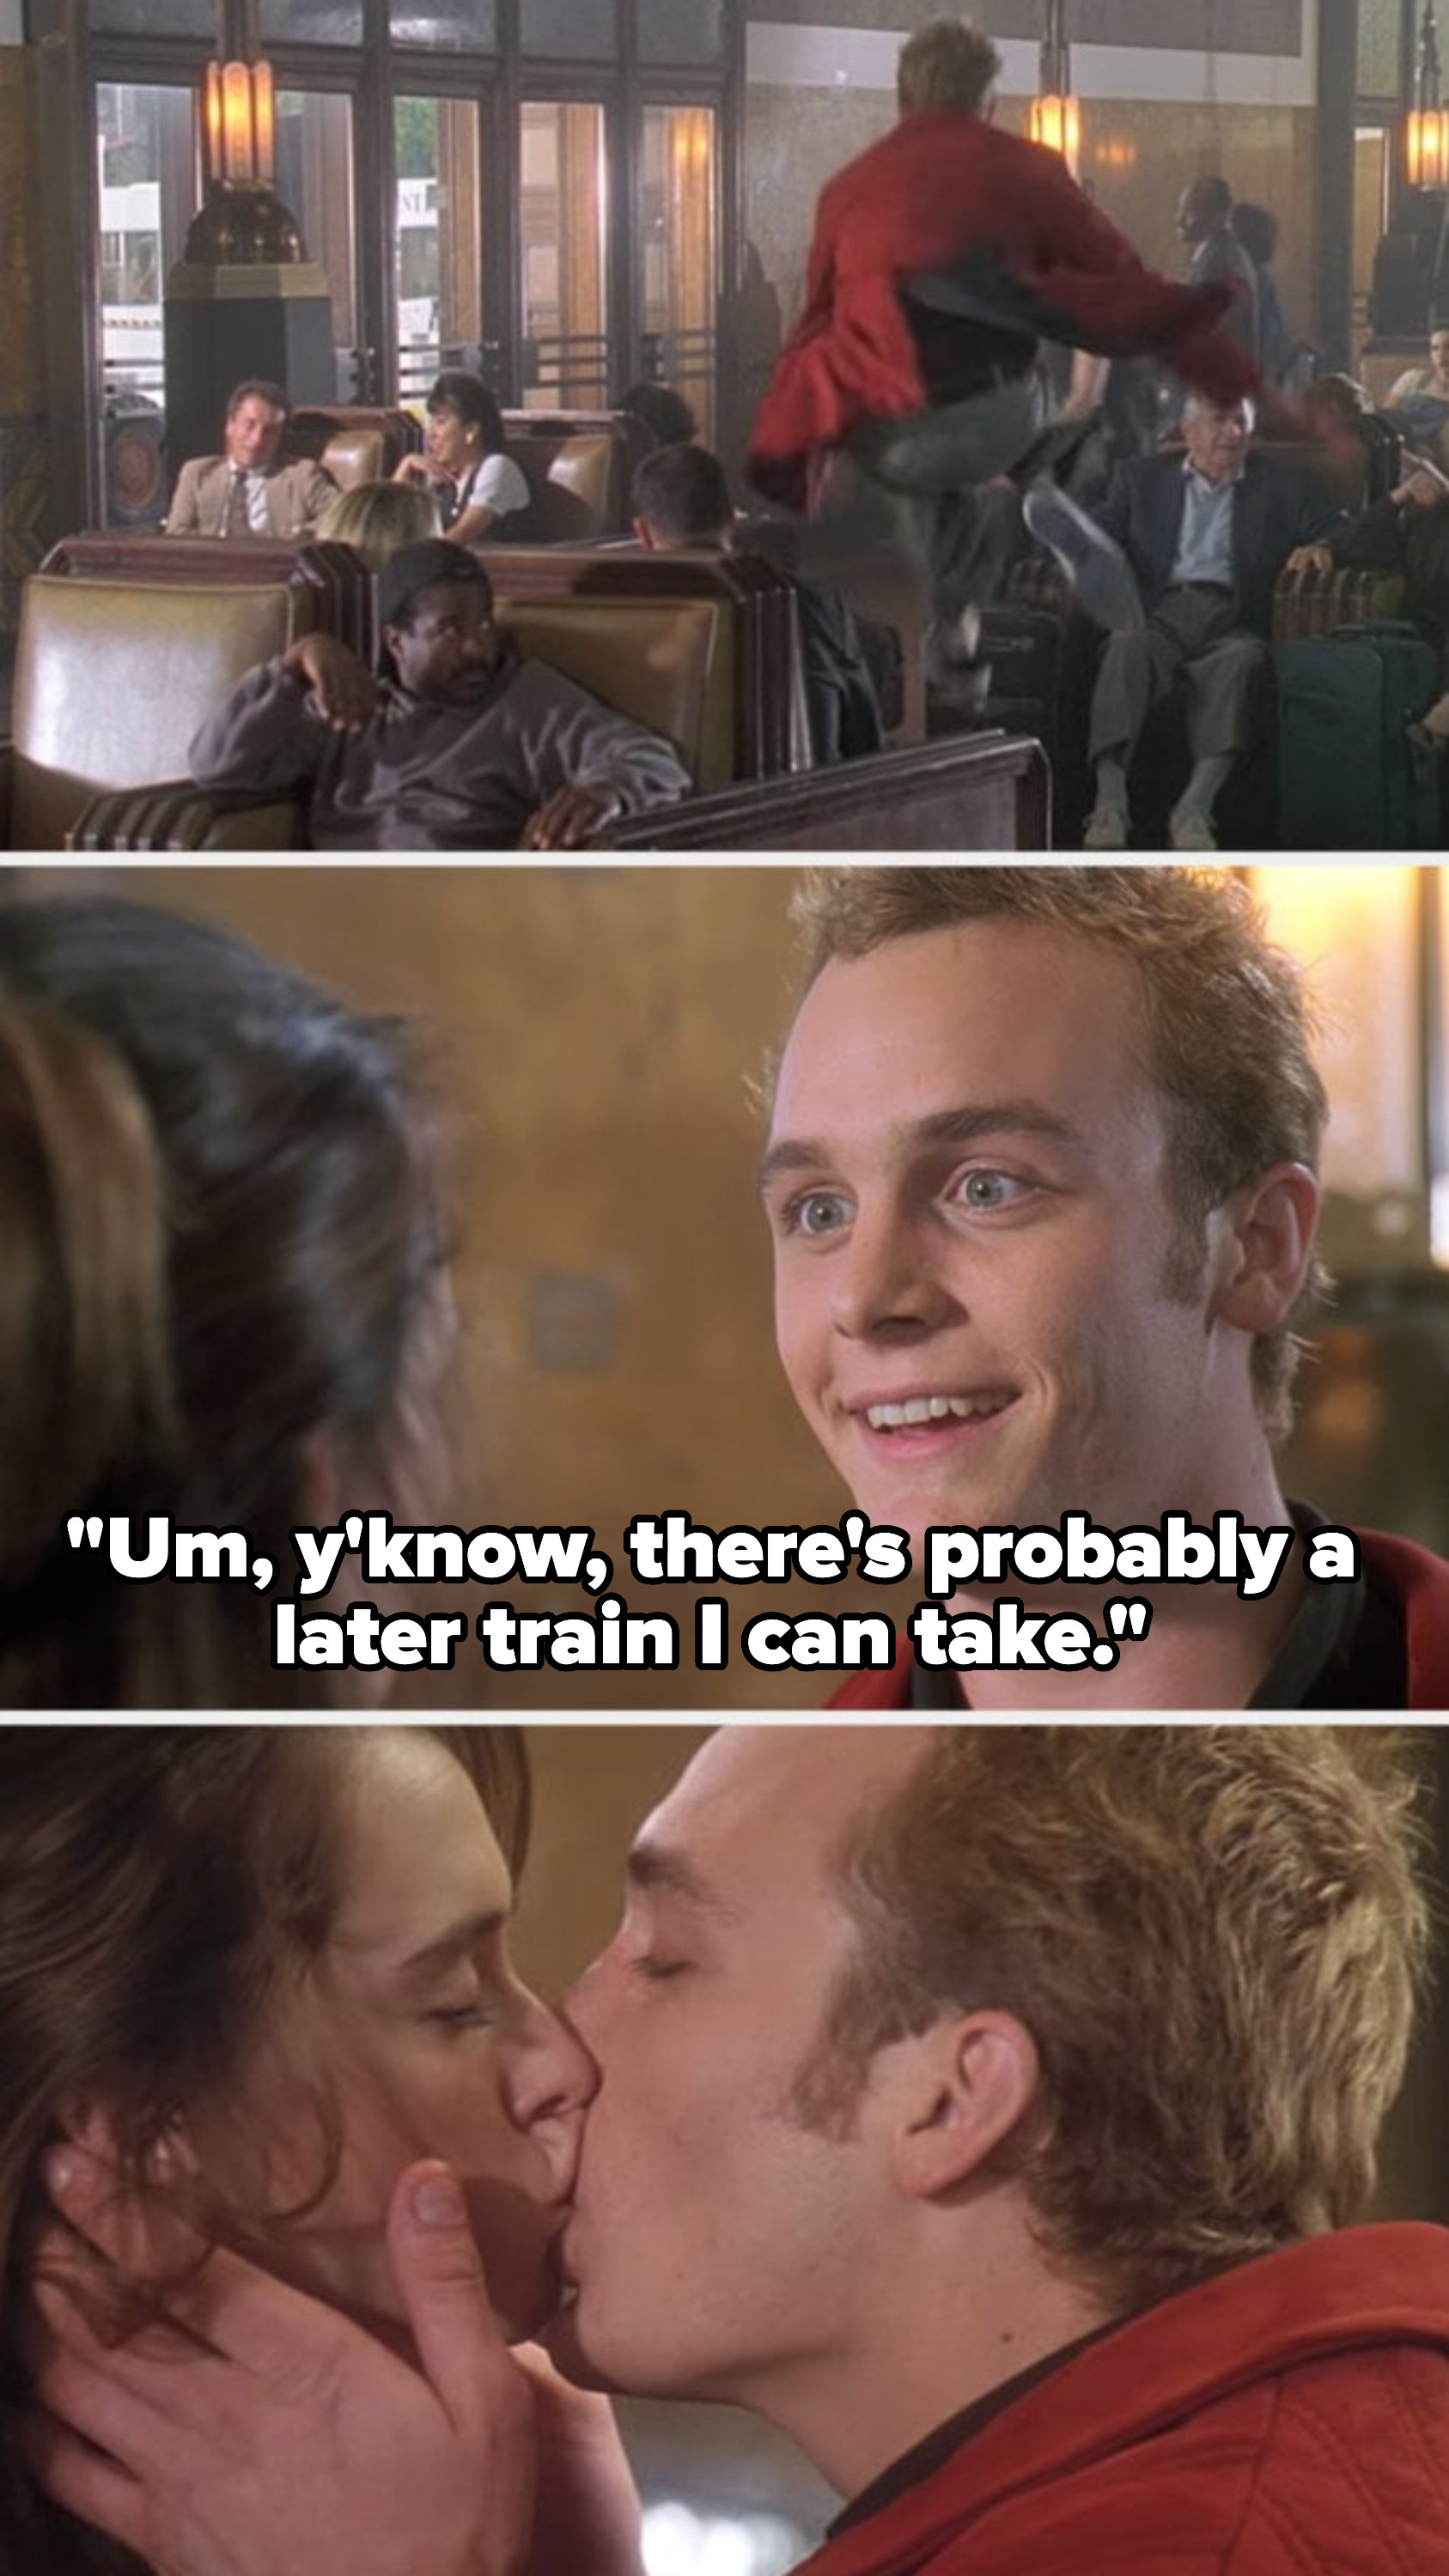 """Preston running across the train station to catch up with Amanda, telling her, """"there's probably a later train I can take"""" and kissing her"""